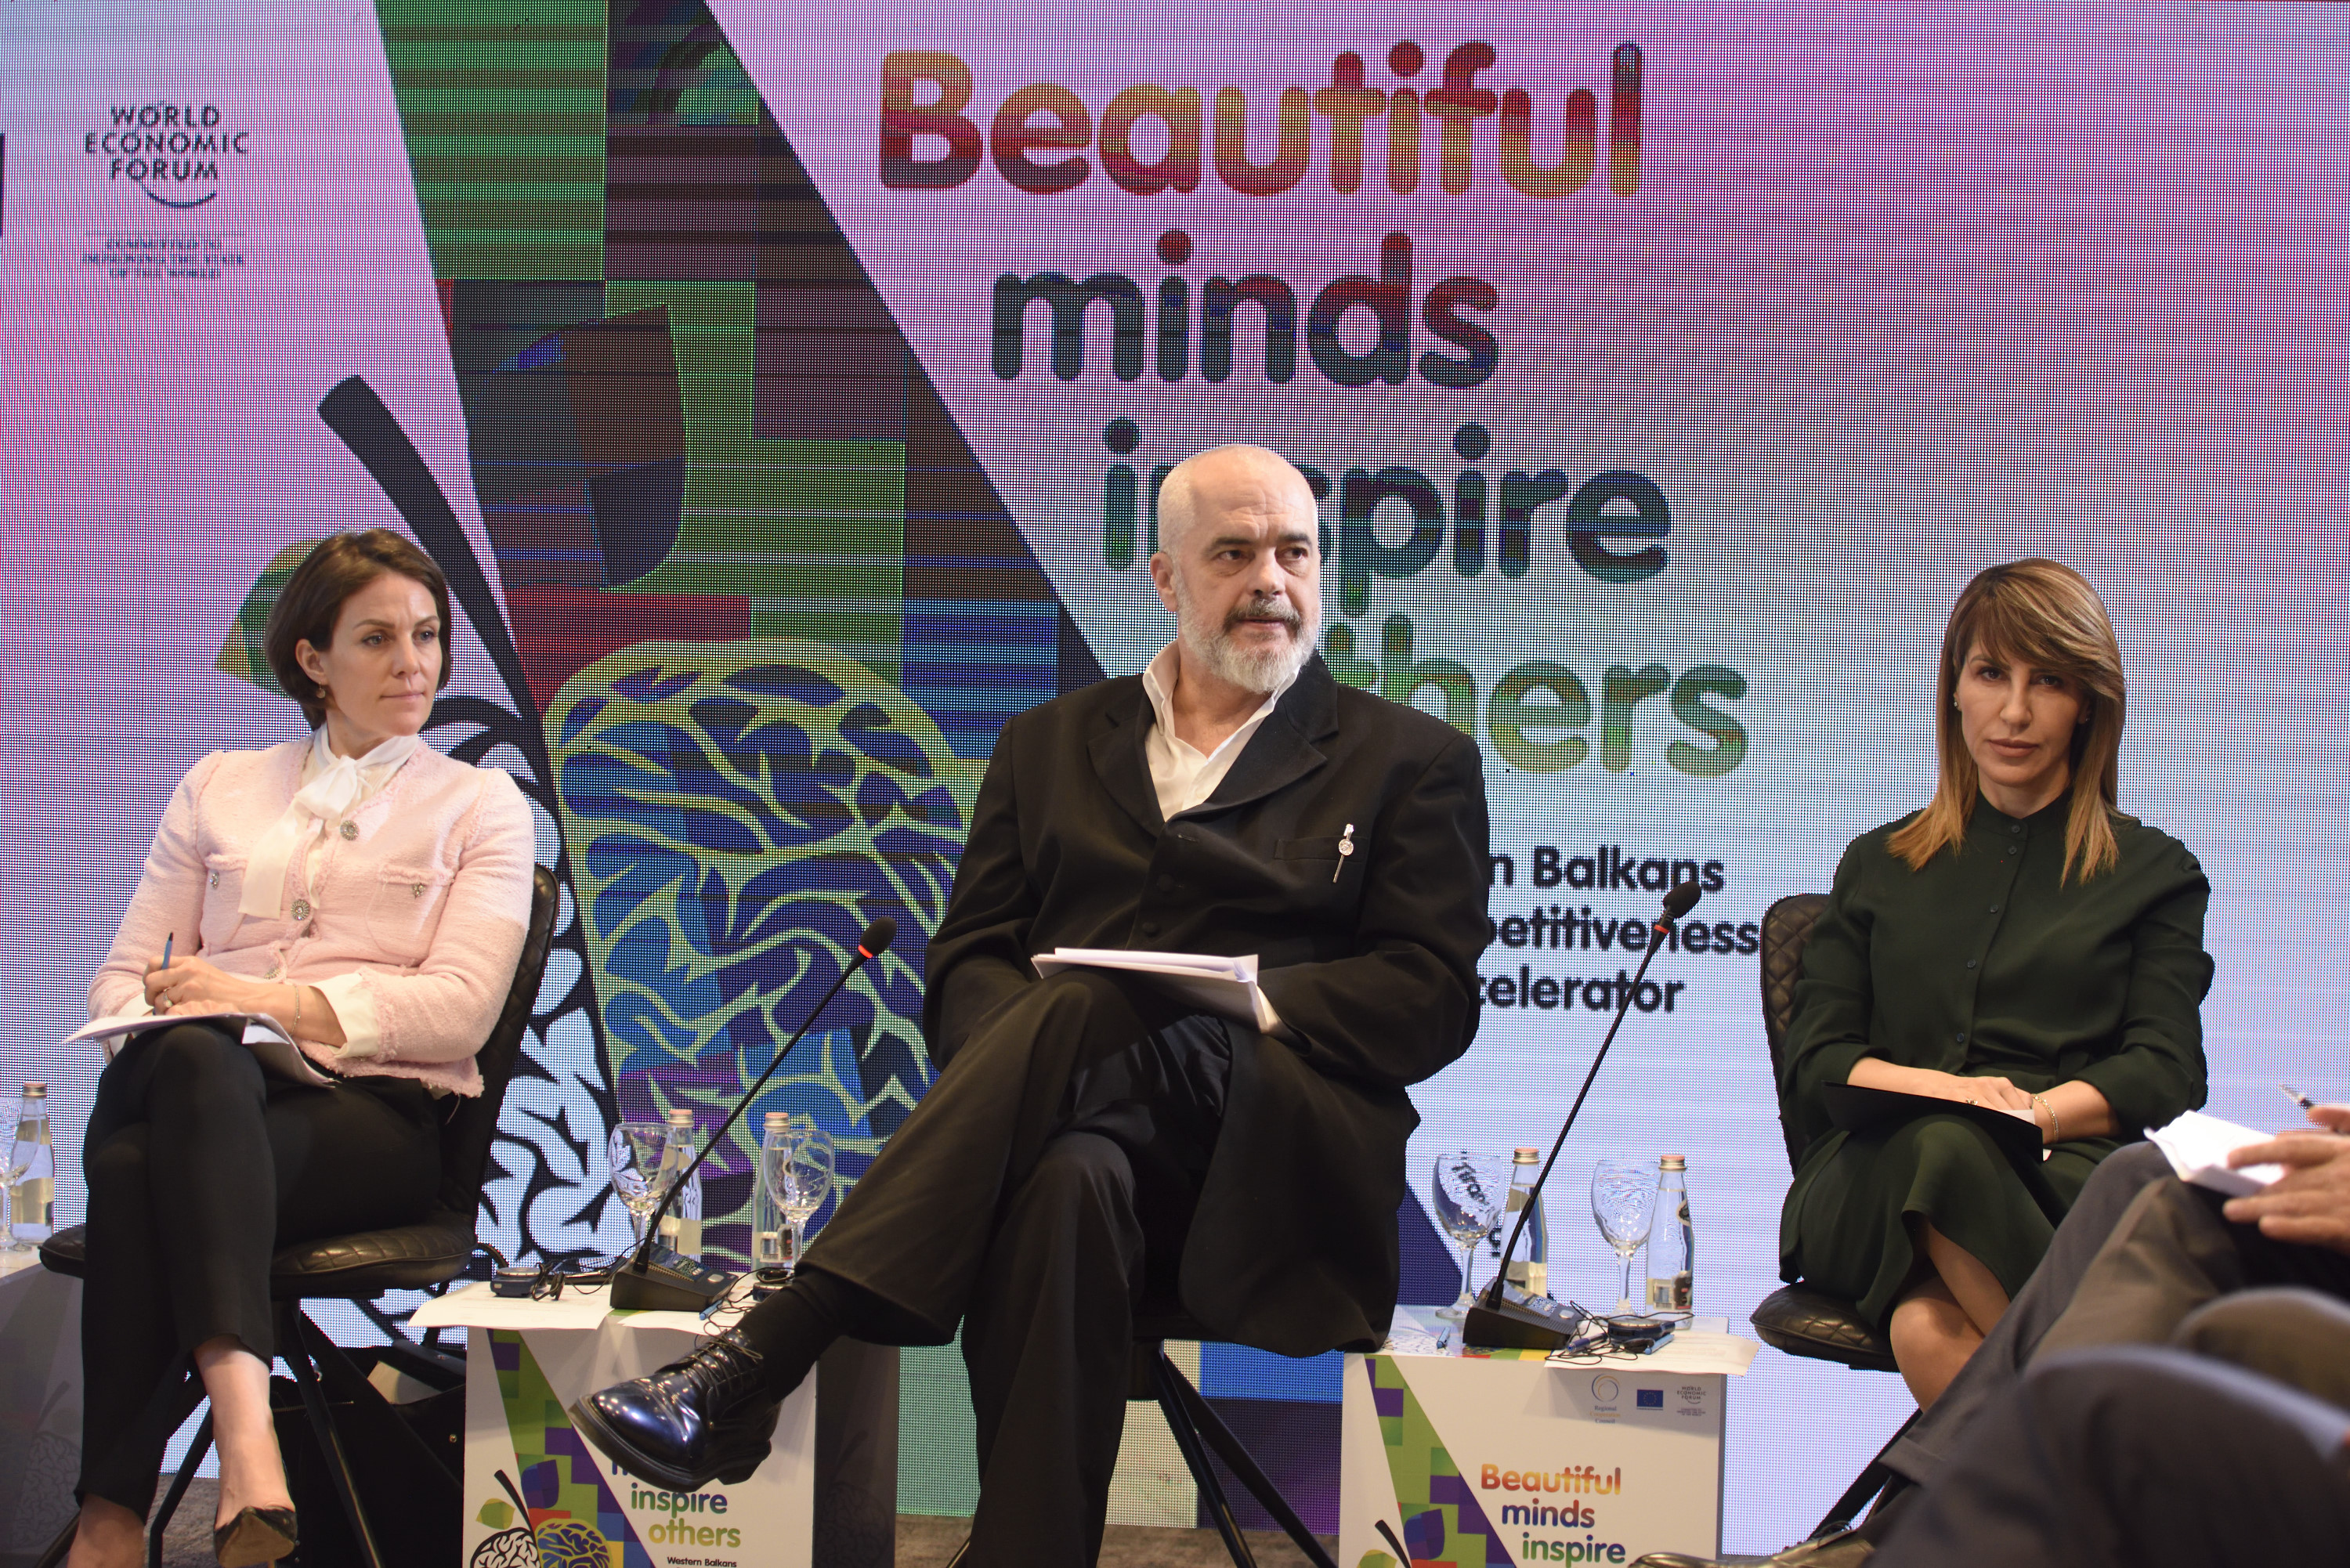 RCC Secretary General Majlinda Bregu (first right), Albanian Prime Minister, Edi Rama and Member of the Executive Committee and Head of Regional Strategies-Europe and Eurasia at the World Economic Forum Martina Larkin, at the kick-off meeting of the Western Balkans Innovation and Competitiveness Accelerator, on 21 February in Tirana. (Photo: RCC/Armand Habazaj)